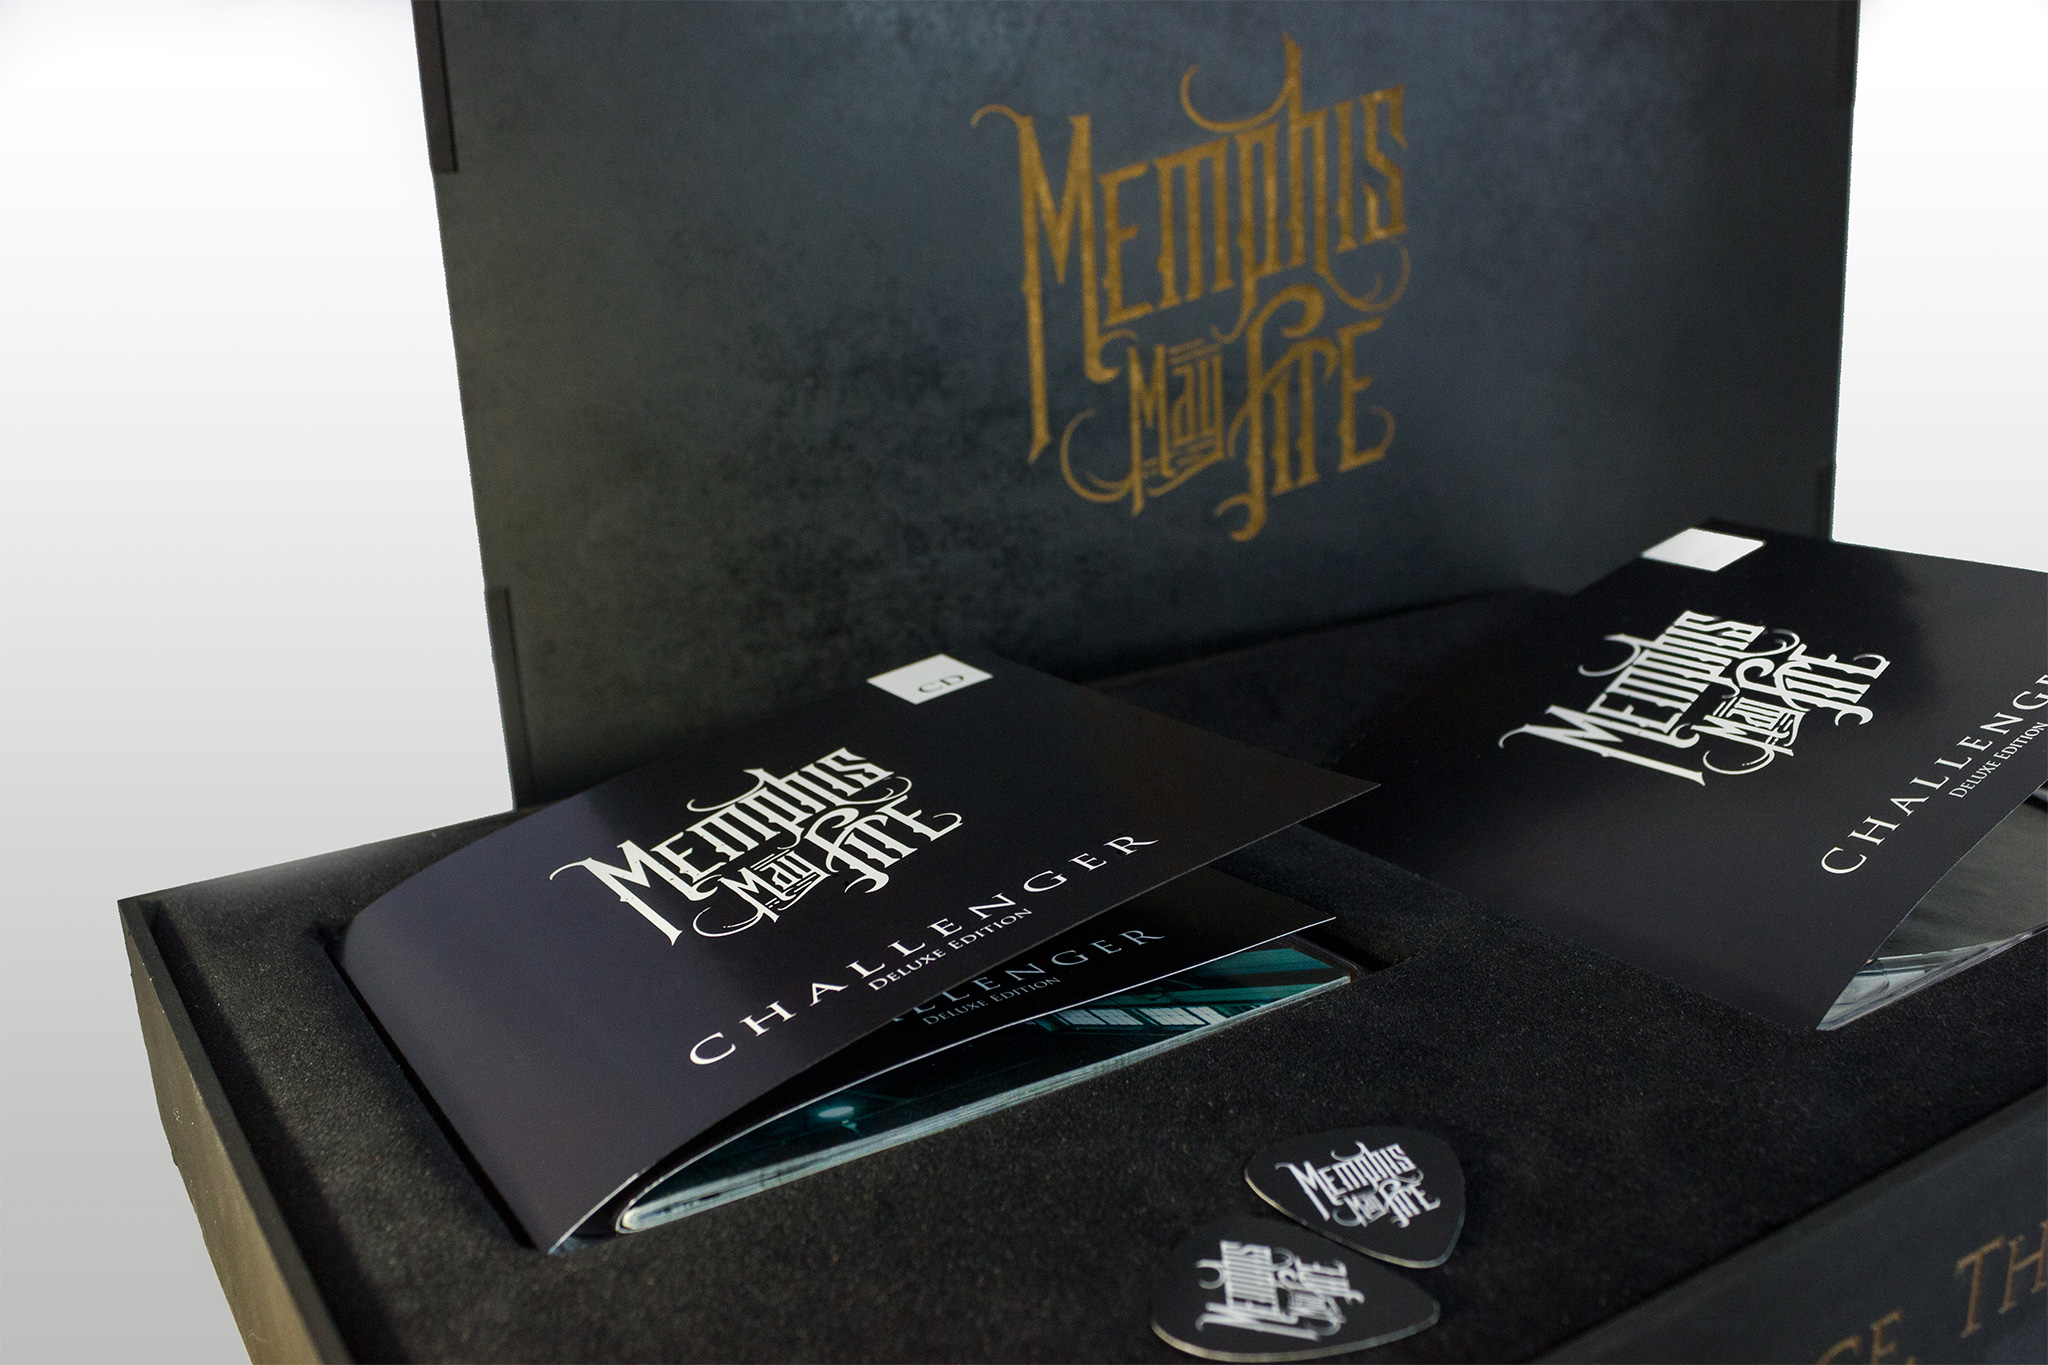 raniev-rod-alvarez-diseño-gráfico-queretaro-memphis-may-fire-1-packaging